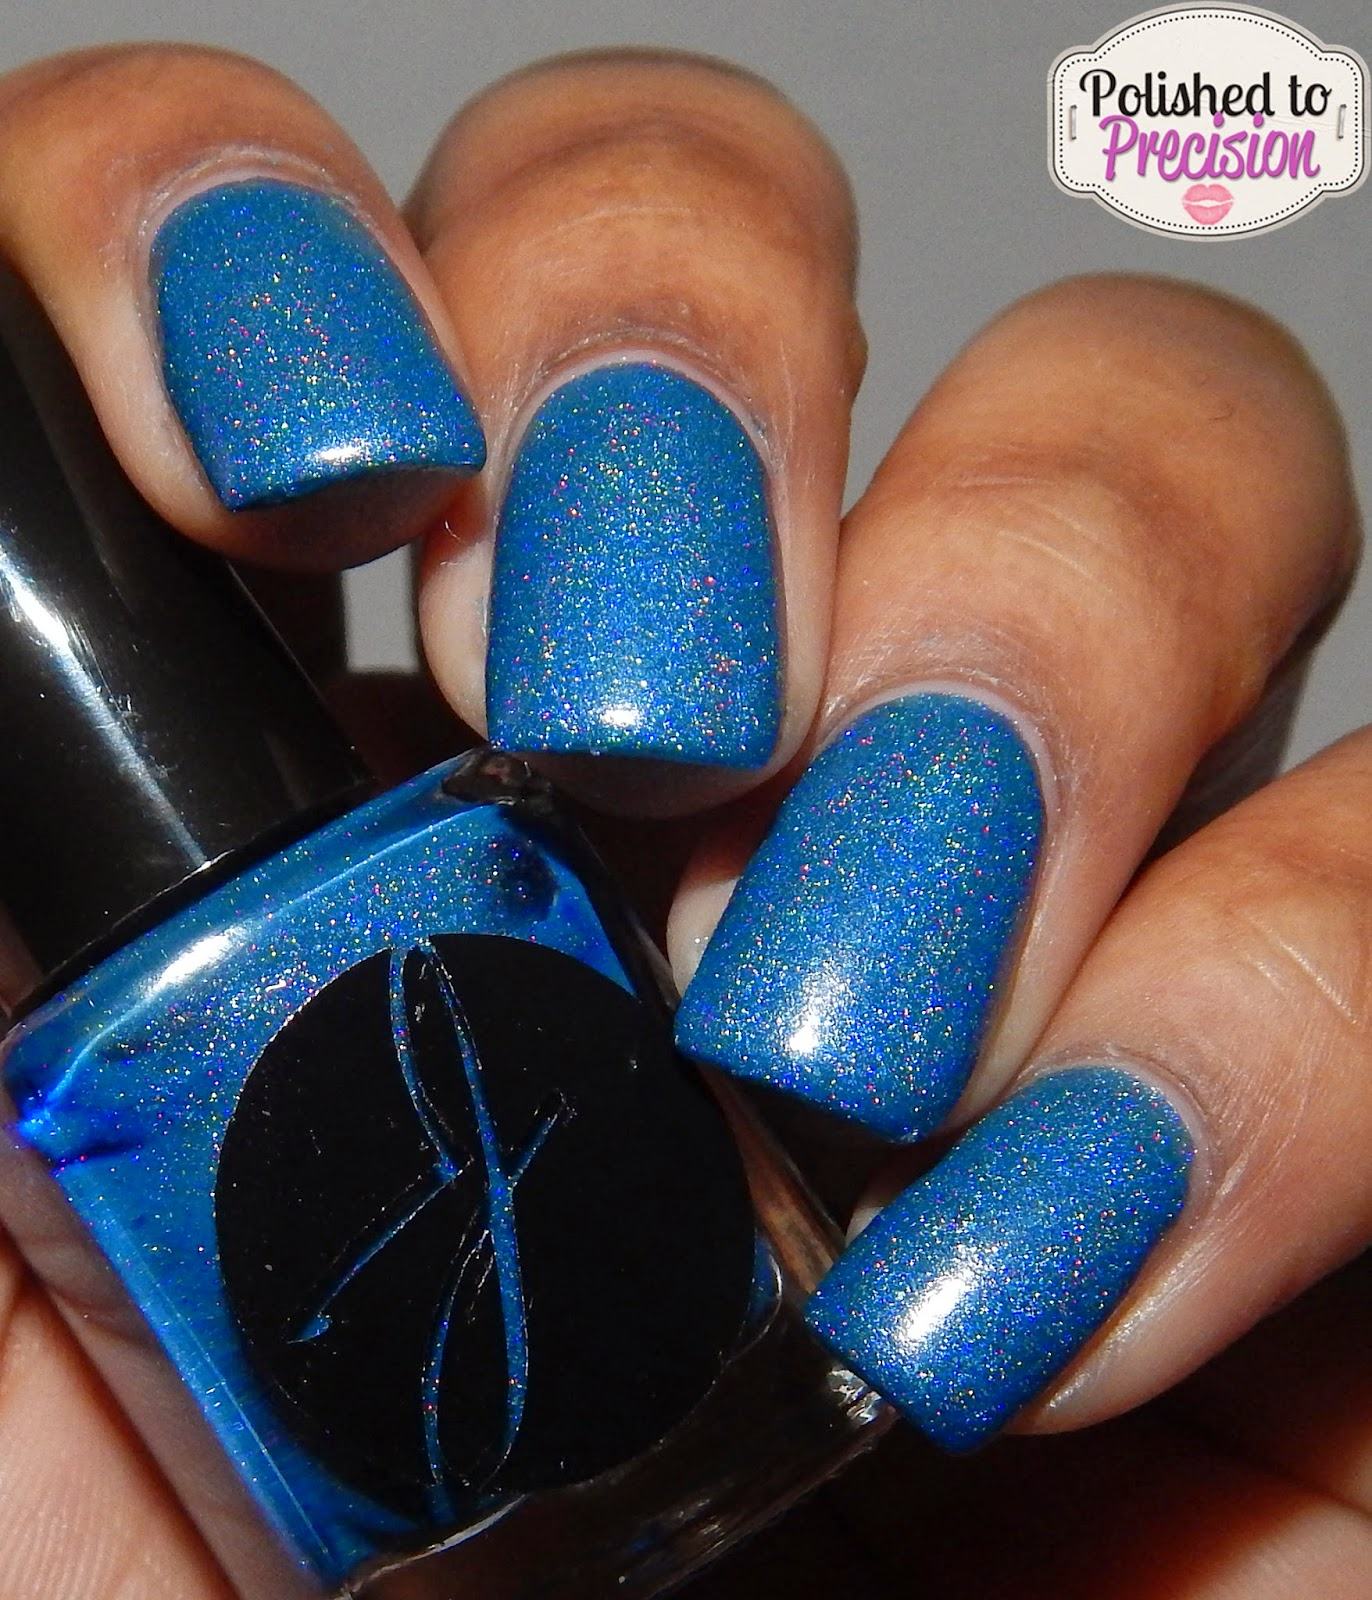 Jior Couture Oh Holo Night